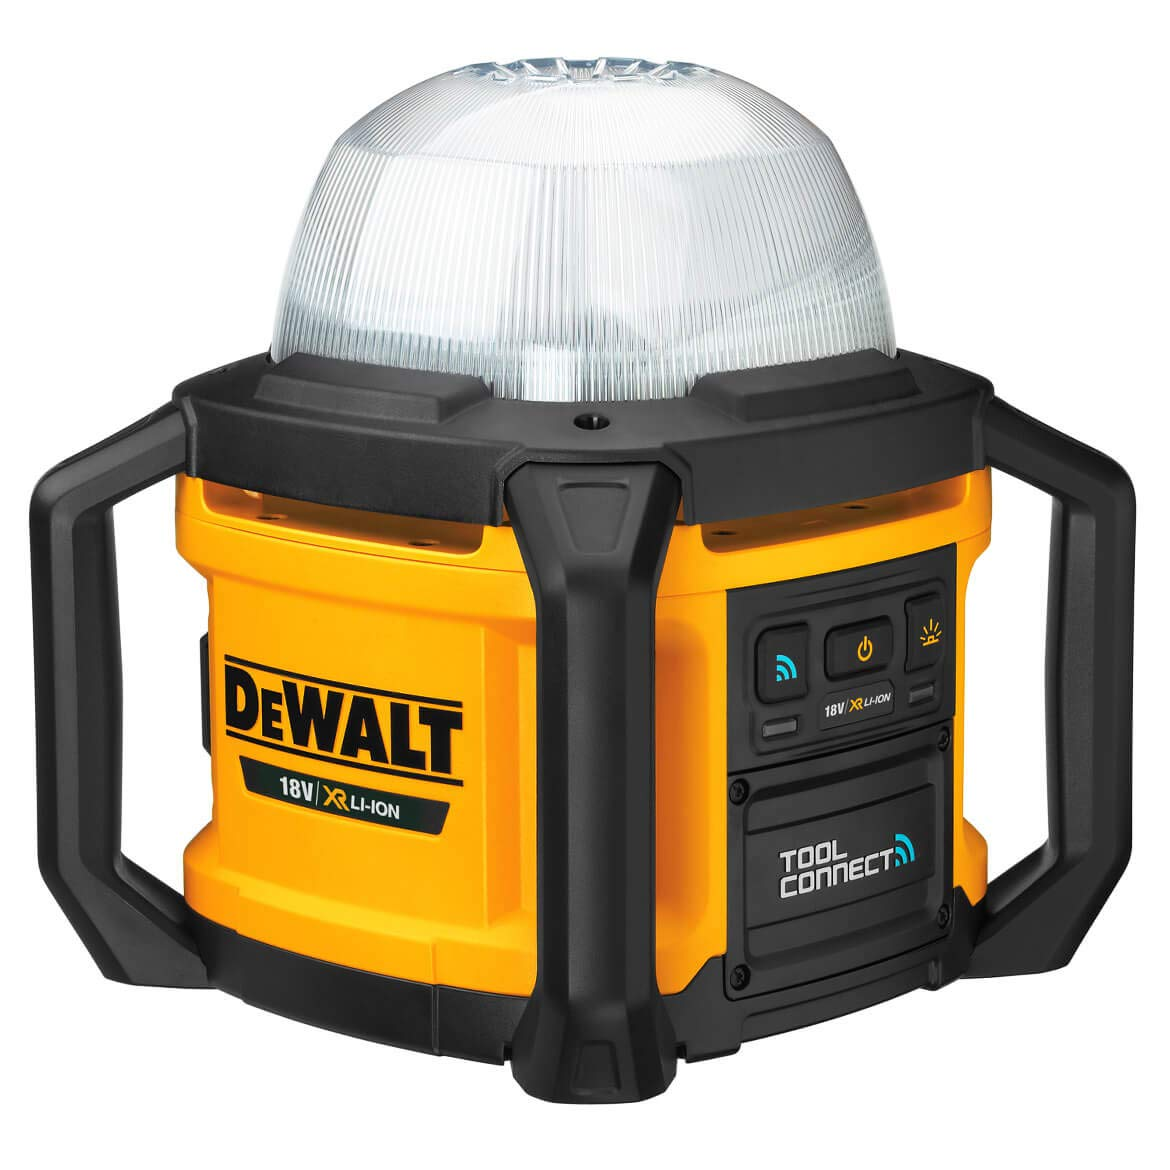 DEWALT 20V MAX LED Work Light, Tool Only (DCL074) by DEWALT